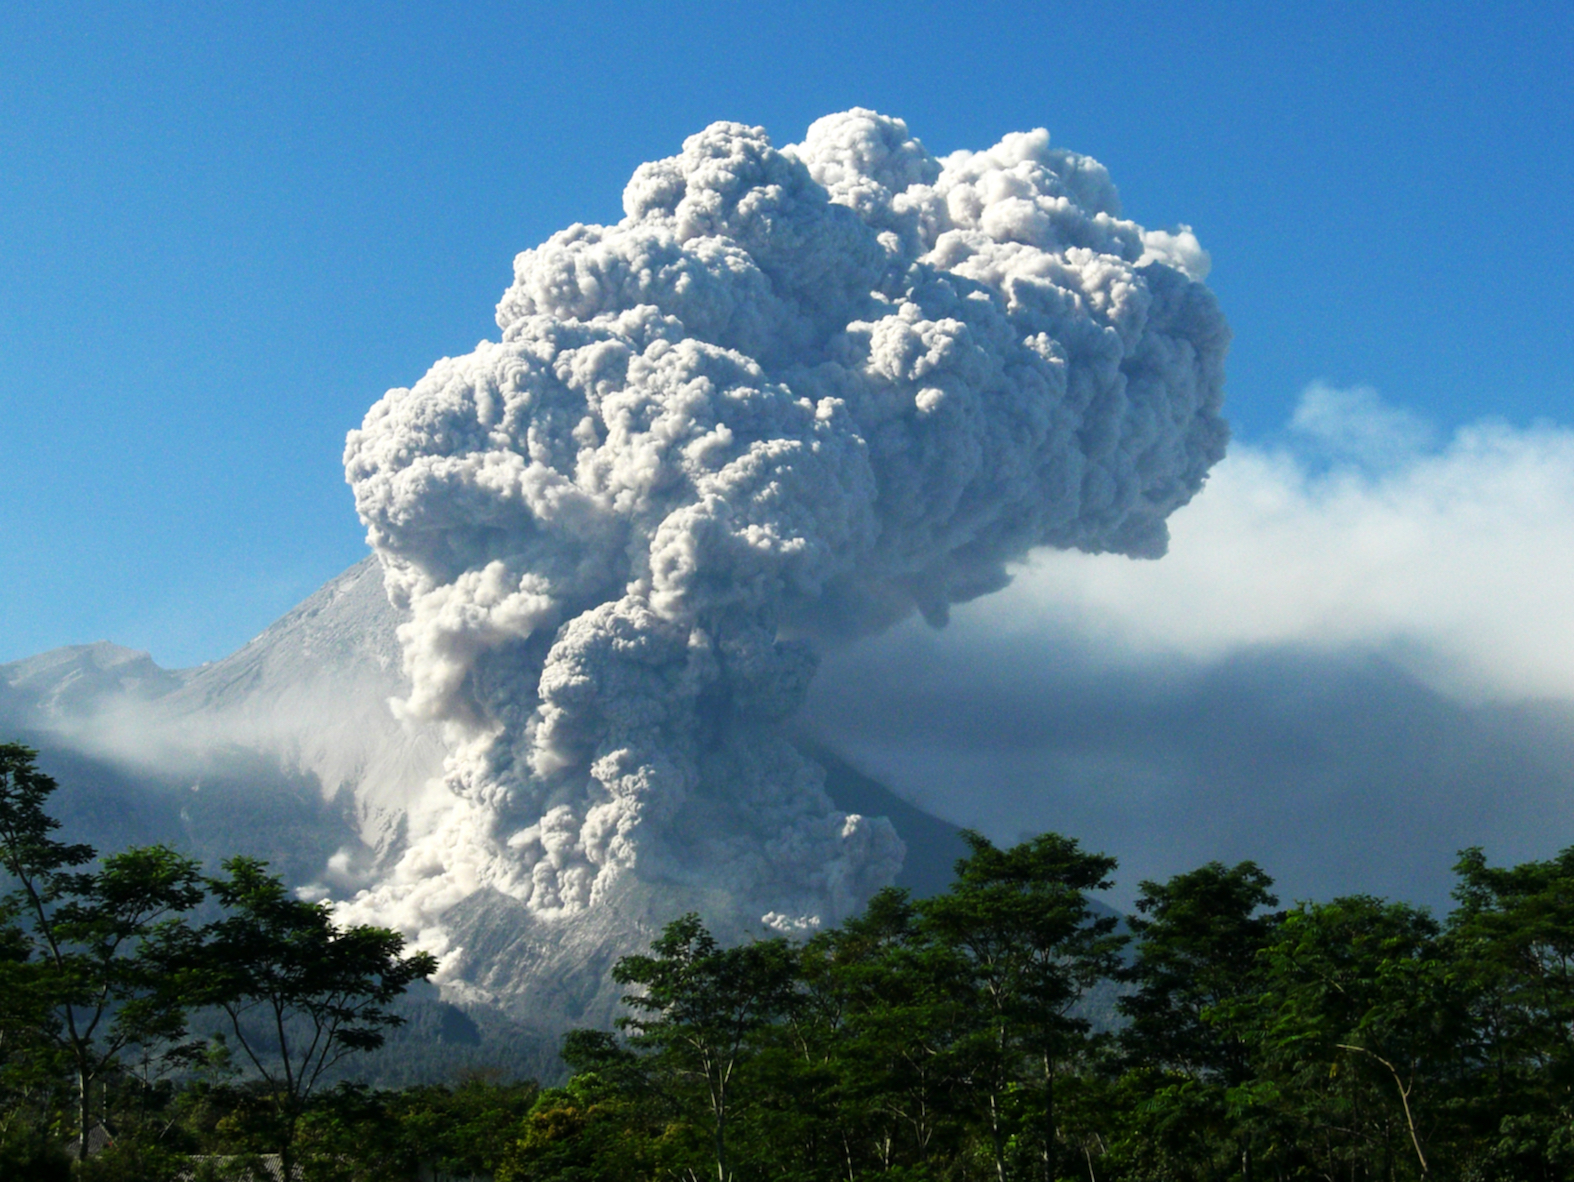 What if scientists could safely and accurately predict volcanic eruptions using satellite monitoring in space?